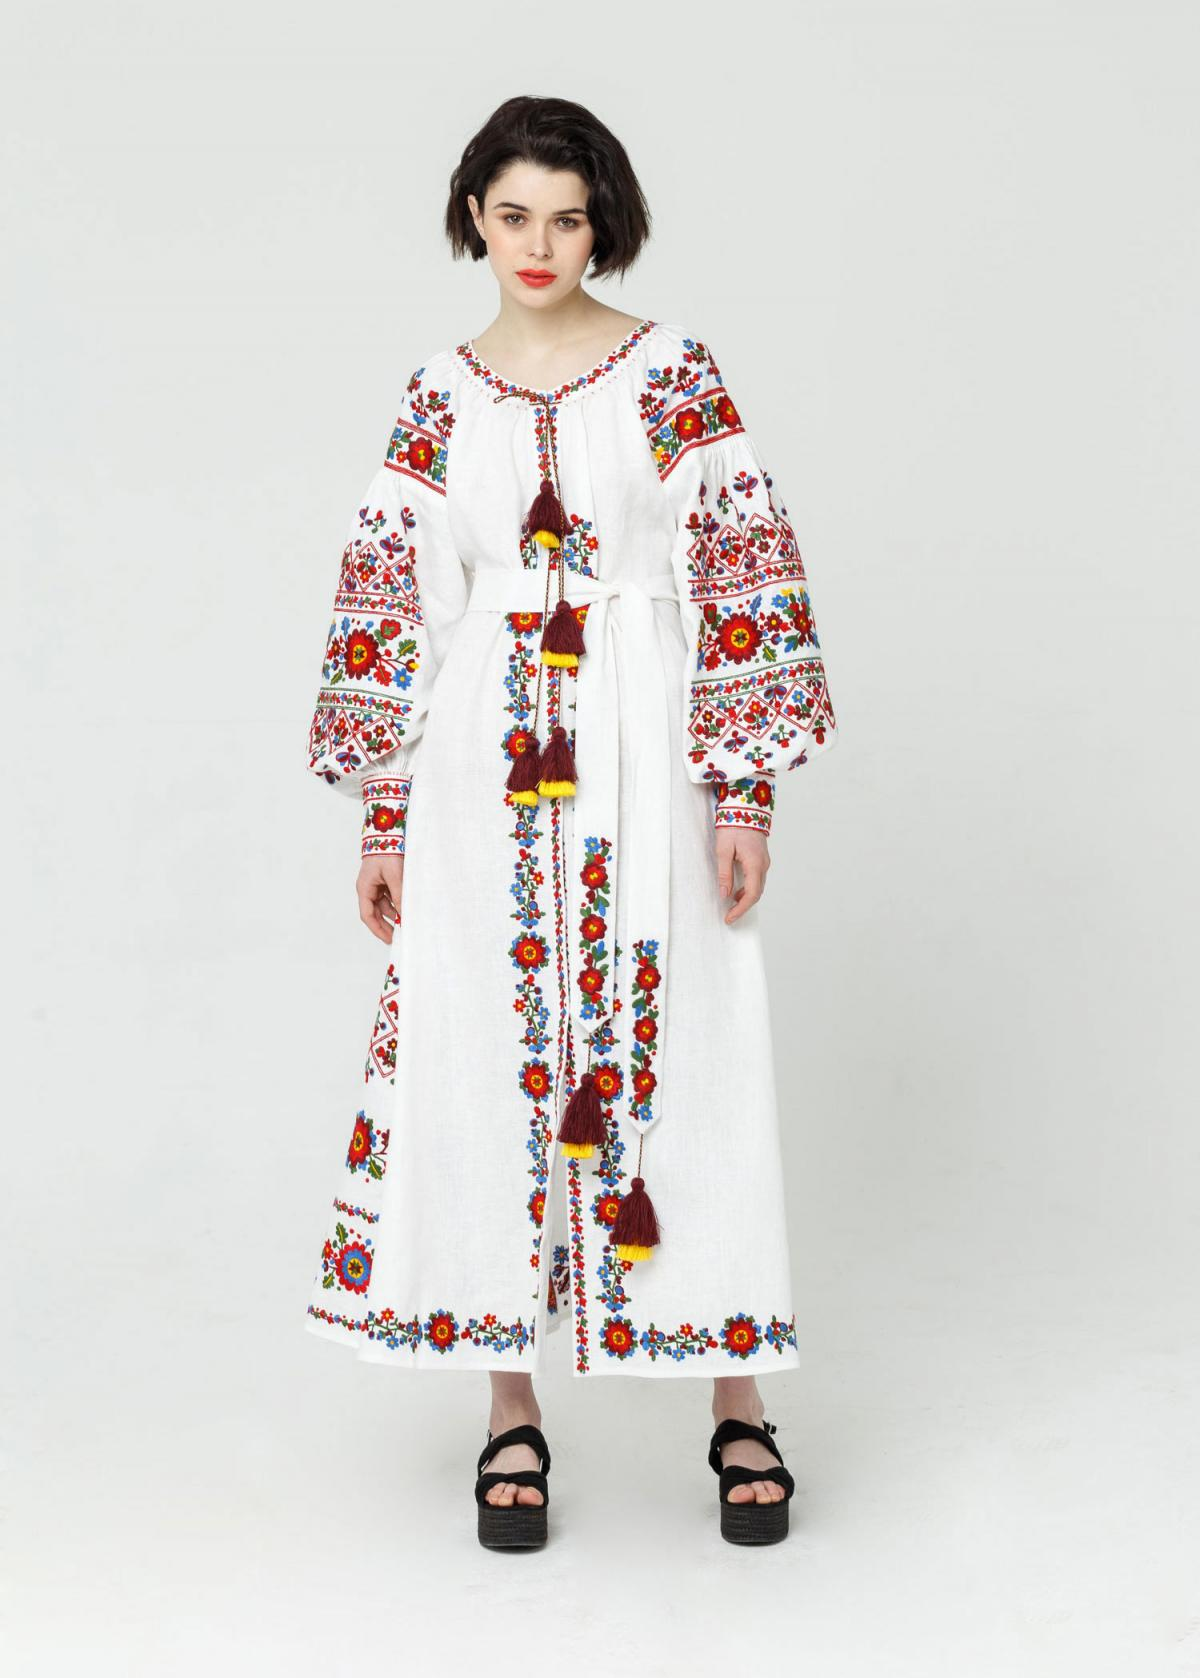 Long white embroidered dress with embroidery flowers,  Limited Edition. Photo №3. | Narodnyi dim Ukraine